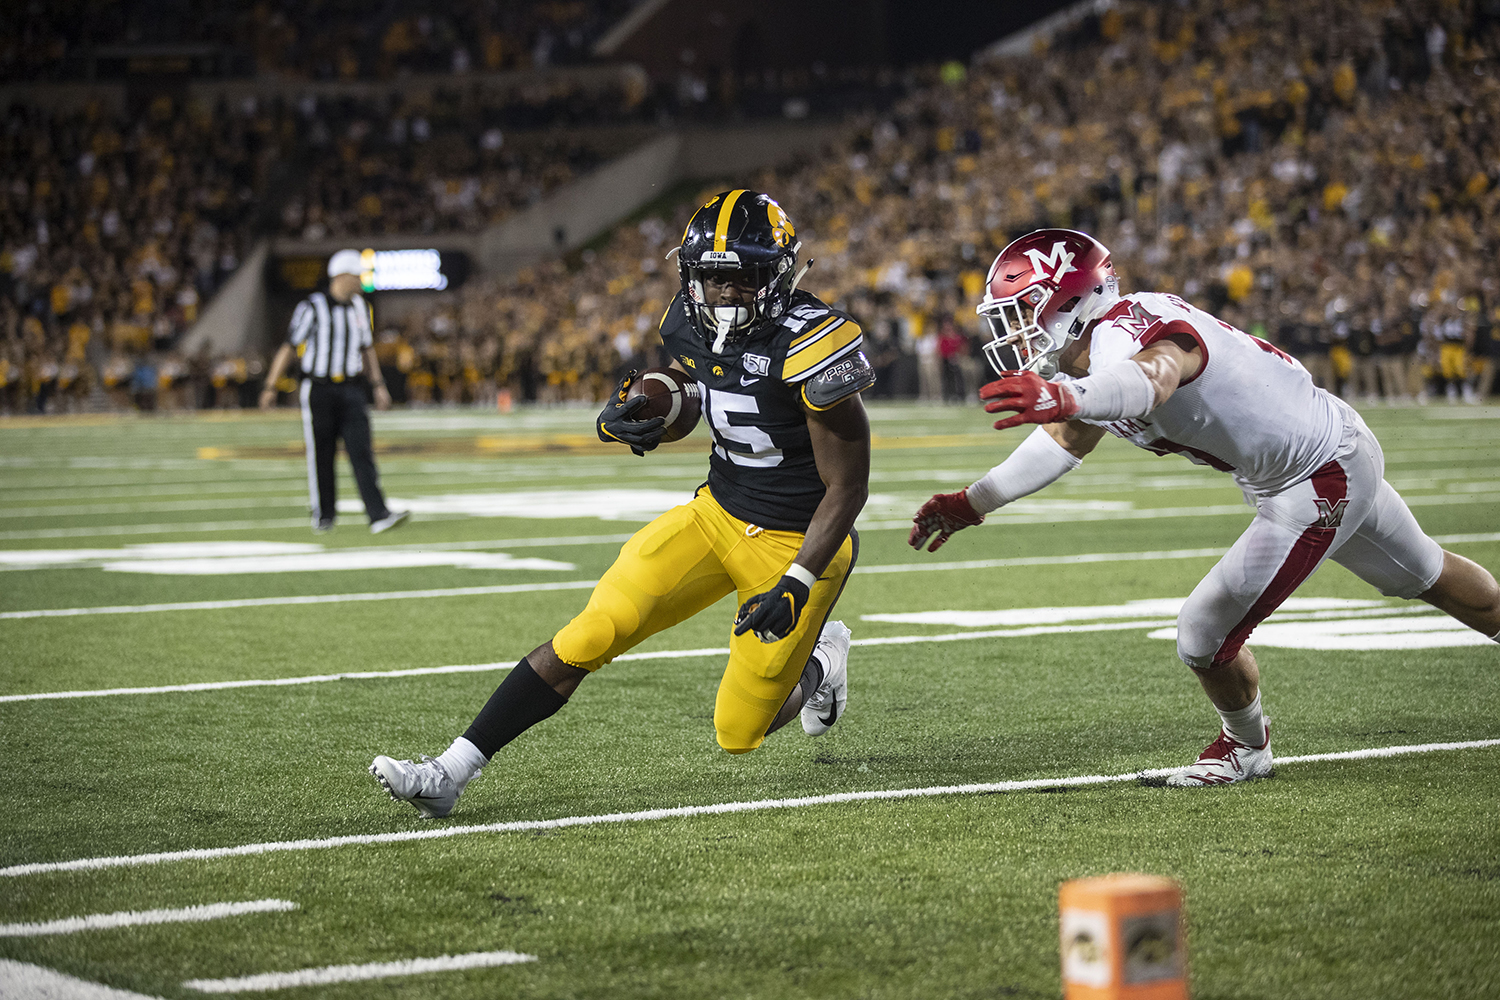 Iowa+running+back+Tyler+Goodson+is+tackled+by+the+end-zone+during+the+Iowa+football+vs.+Miami+%28Ohio%29+at+Kinnick+Stadium+on+Aug.+31%2C+2019.+Iowa+defeated+the+Miami+%28Ohio%29+38-14.